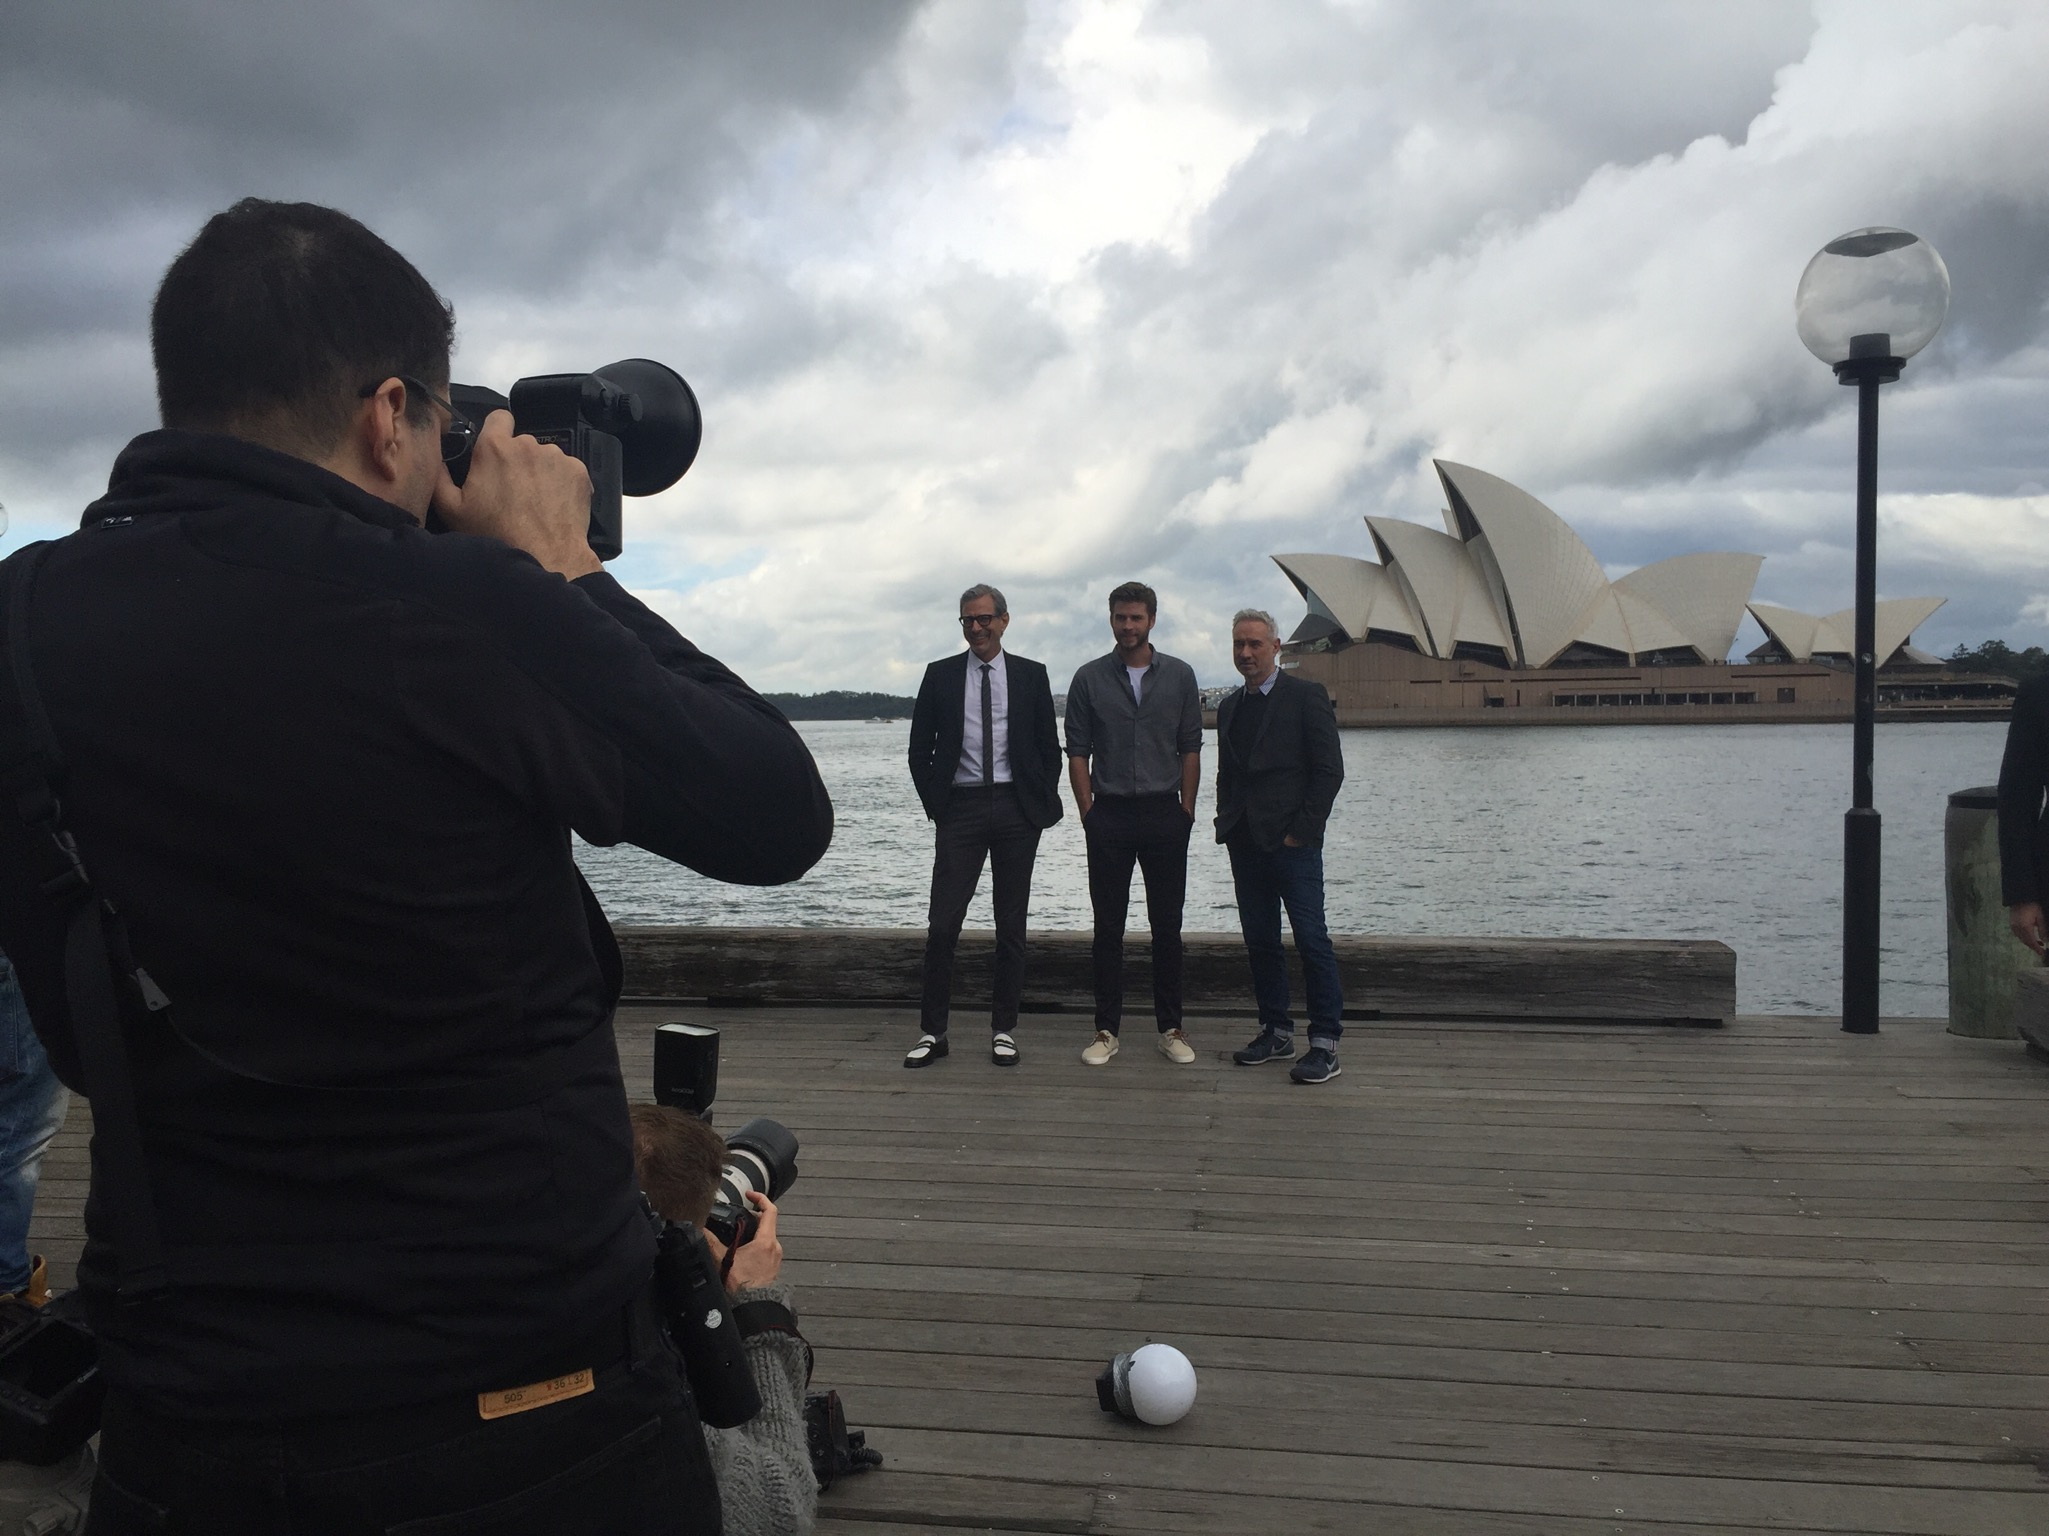 Roland, Jeff, and Liam at a photoshoot in front of the Sydney Opera House